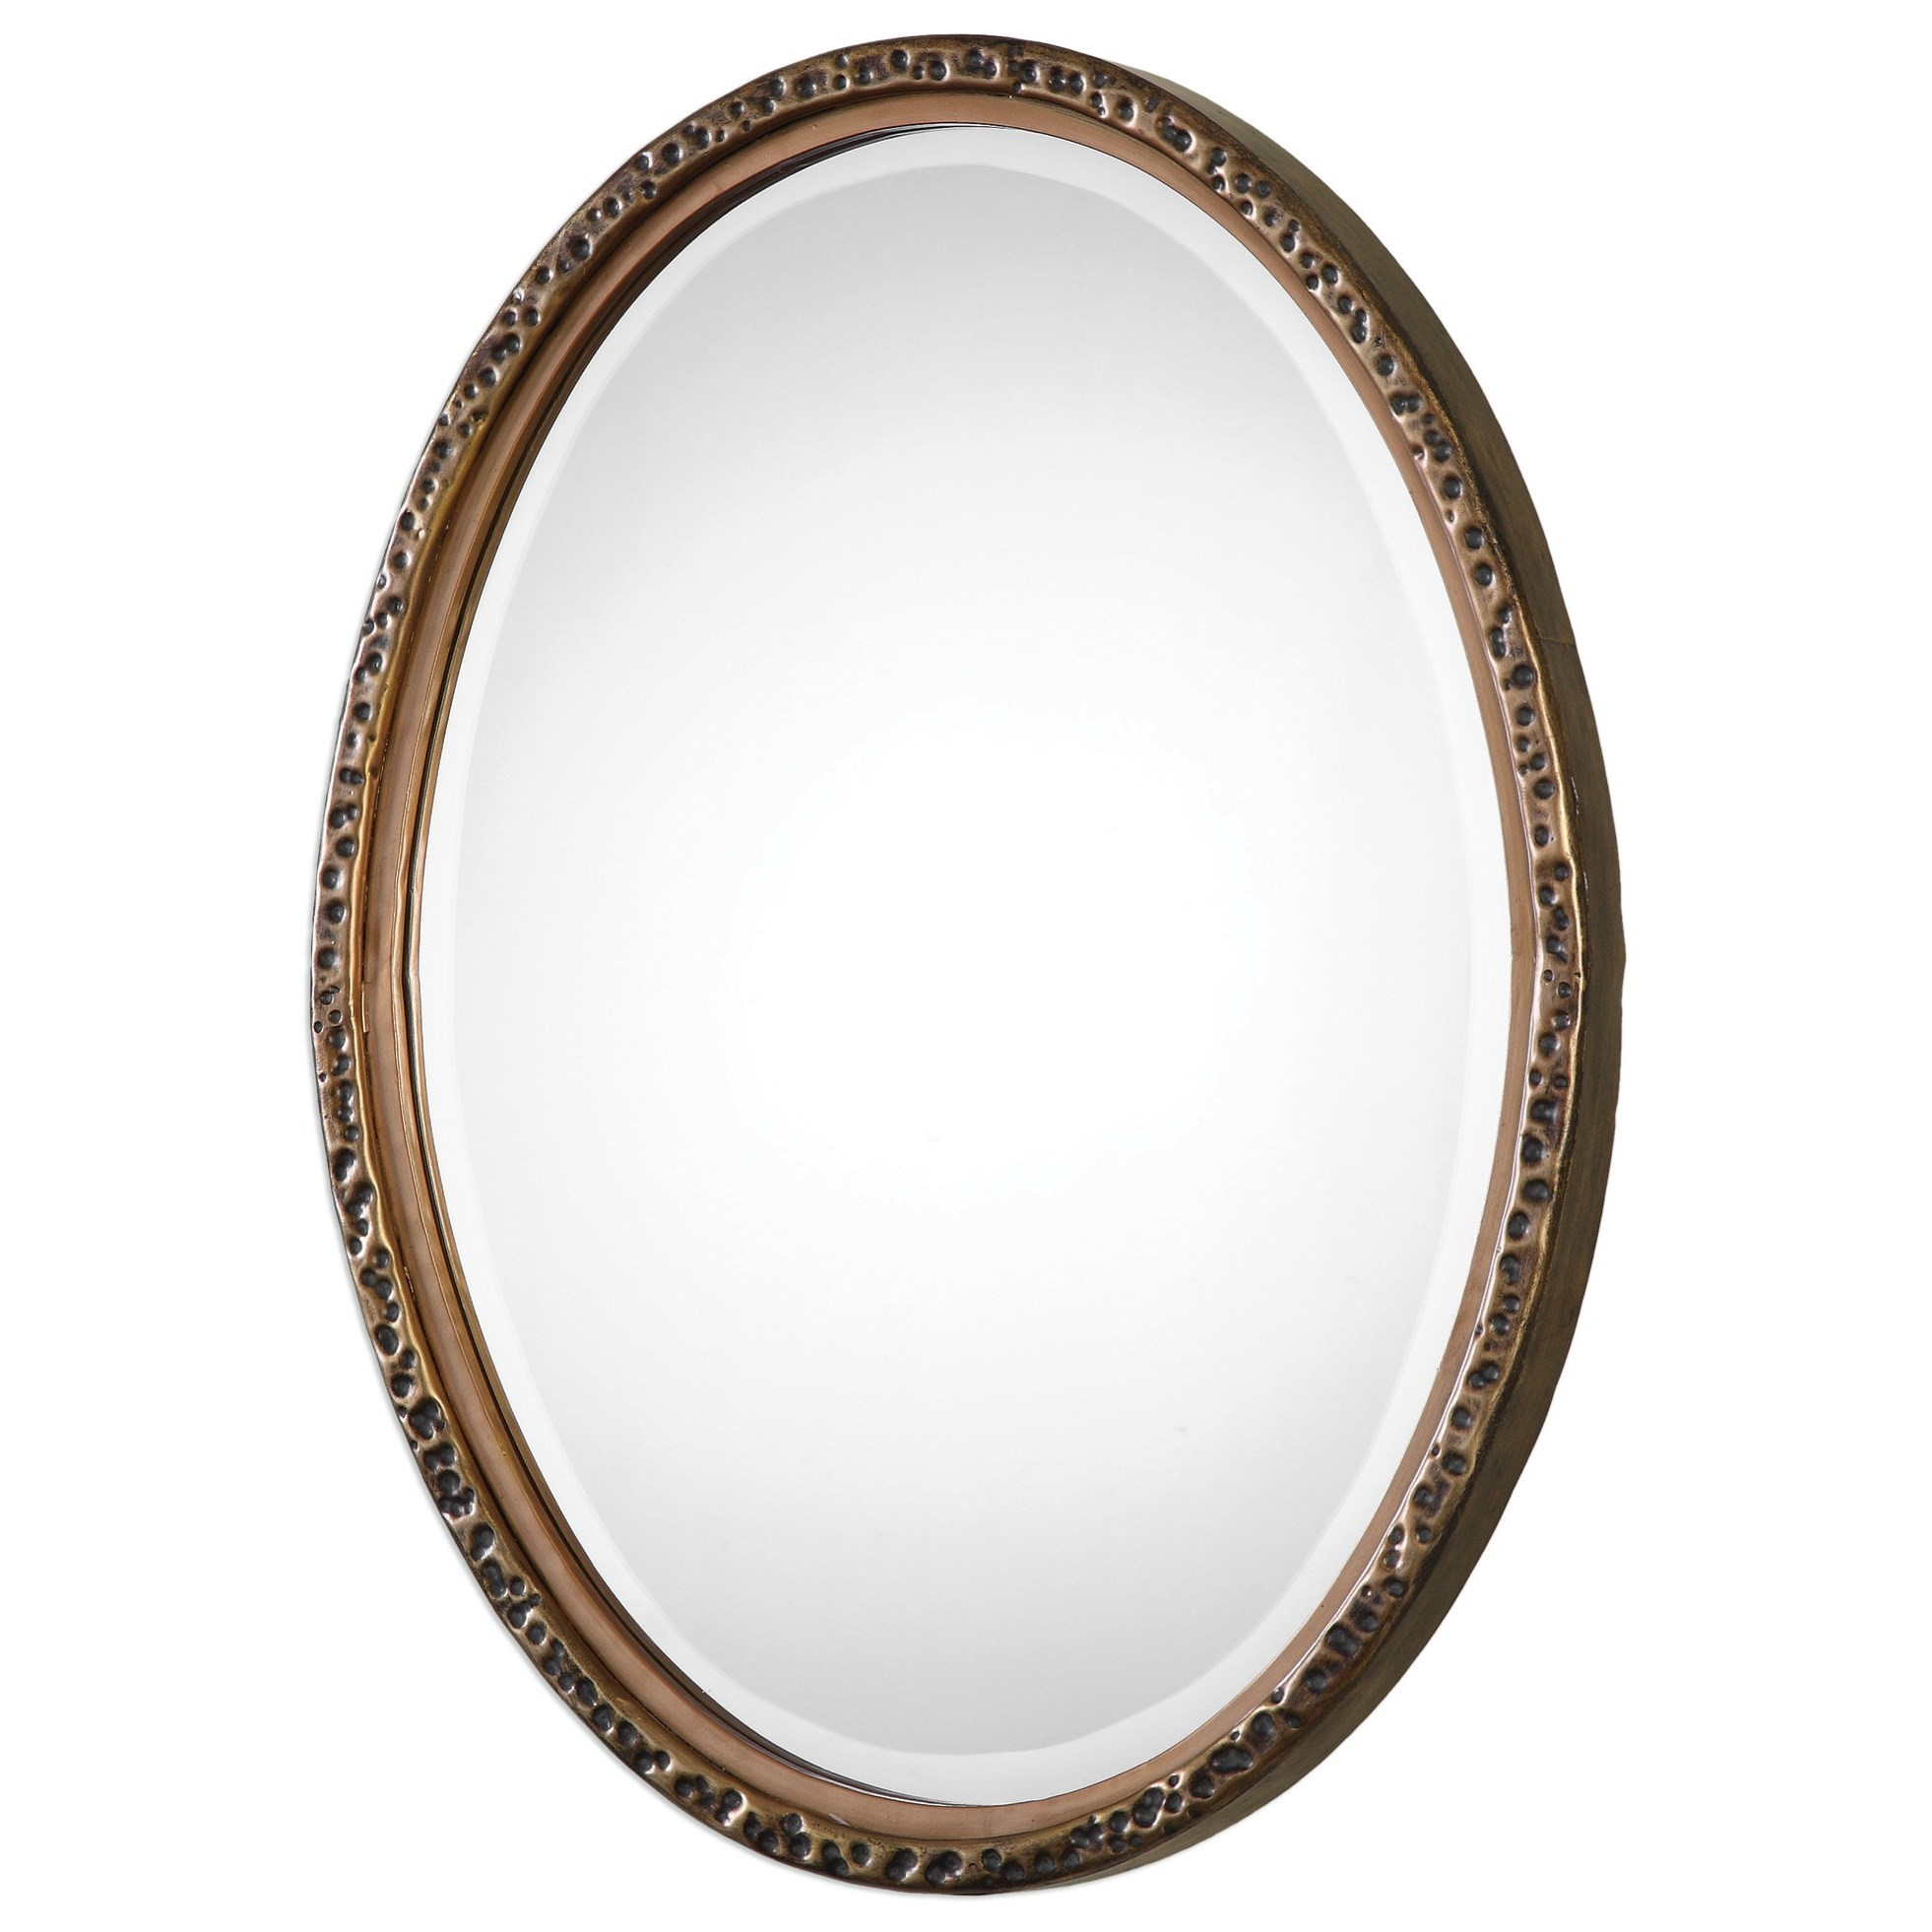 Uttermost Mirrors Pellston Oval - Item Number: 09113